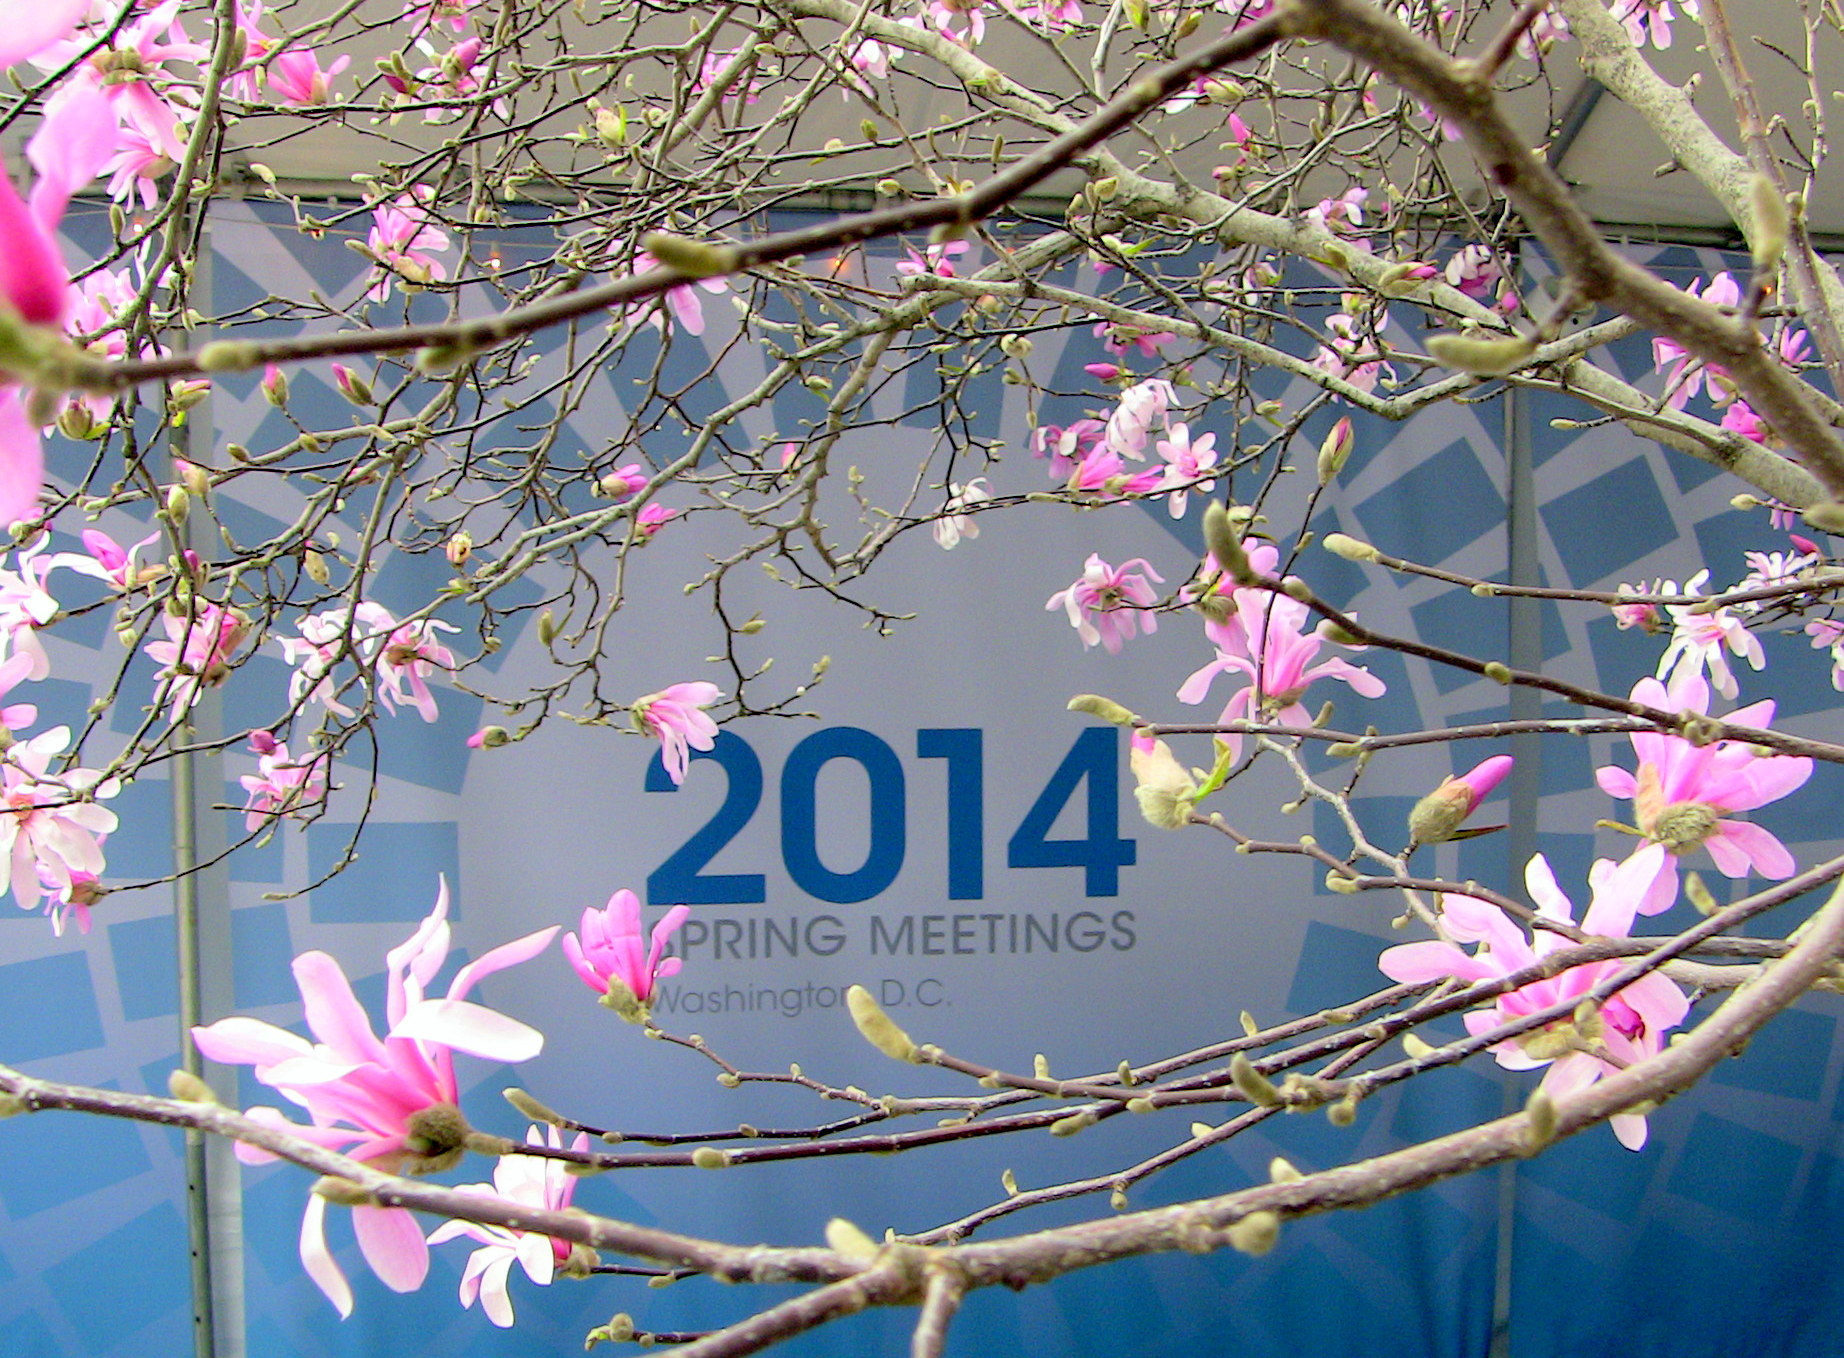 Spring4HumanRights – The 2014 Spring Meetings of the World